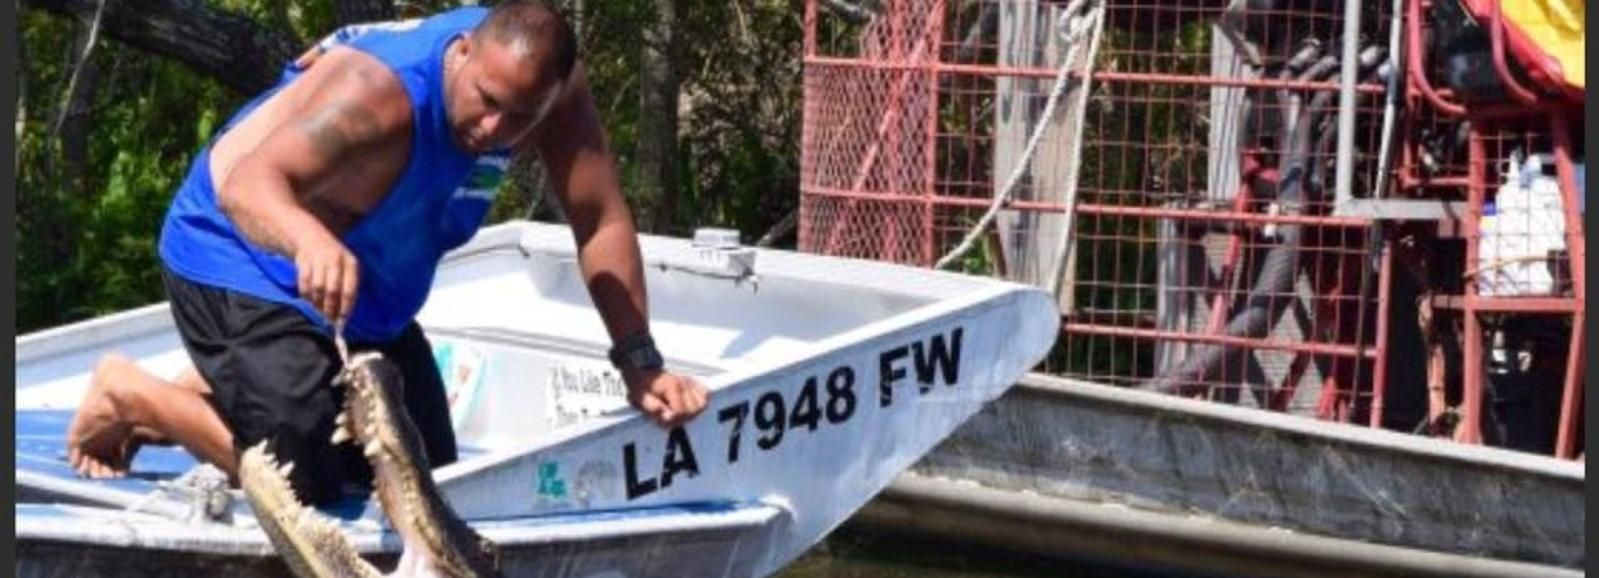 New Orleans High Speed 6-9 Airboat de pasajeros